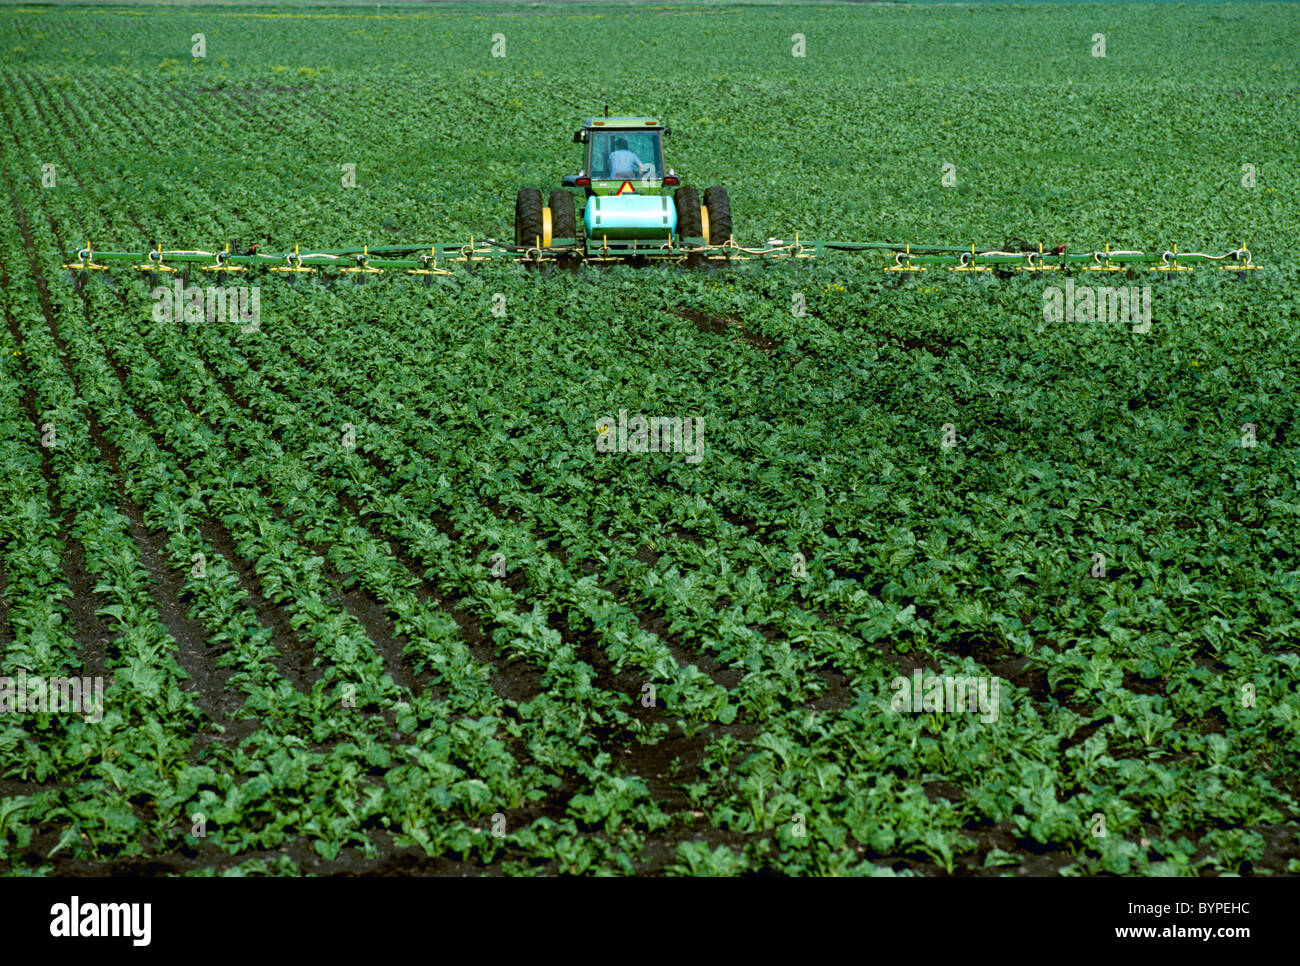 Agriculture - Herbicide application to an early growth sugar